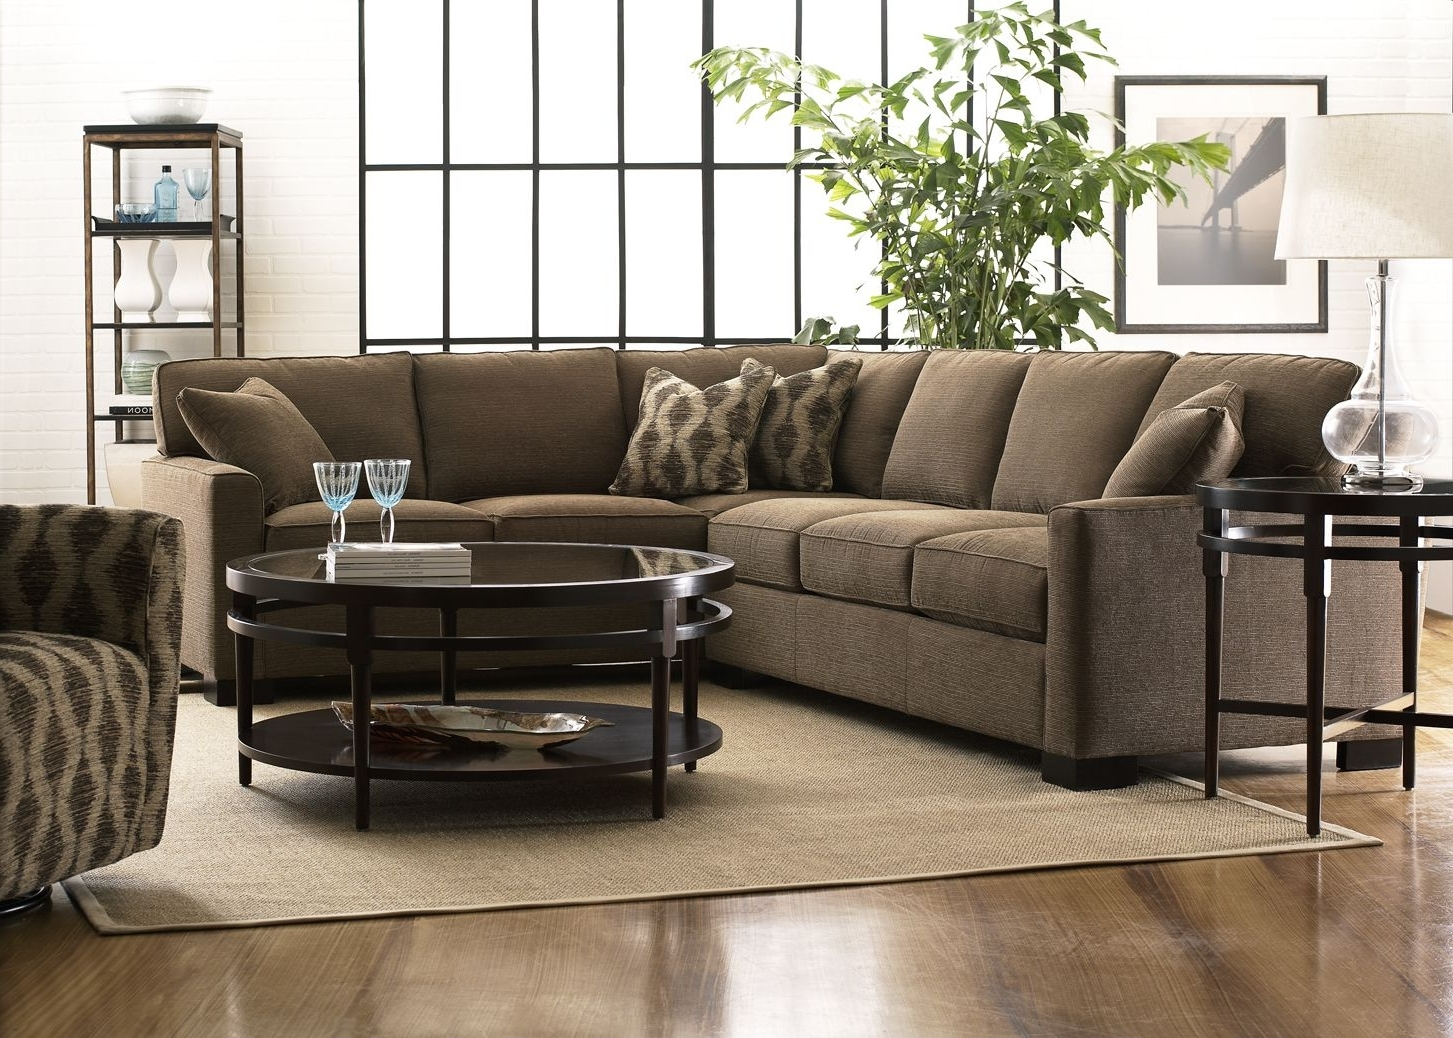 Livingroom : Best Sectional Sofa For Small Living Room Sofas Inside Widely Used Philippines Sectional Sofas (View 7 of 15)